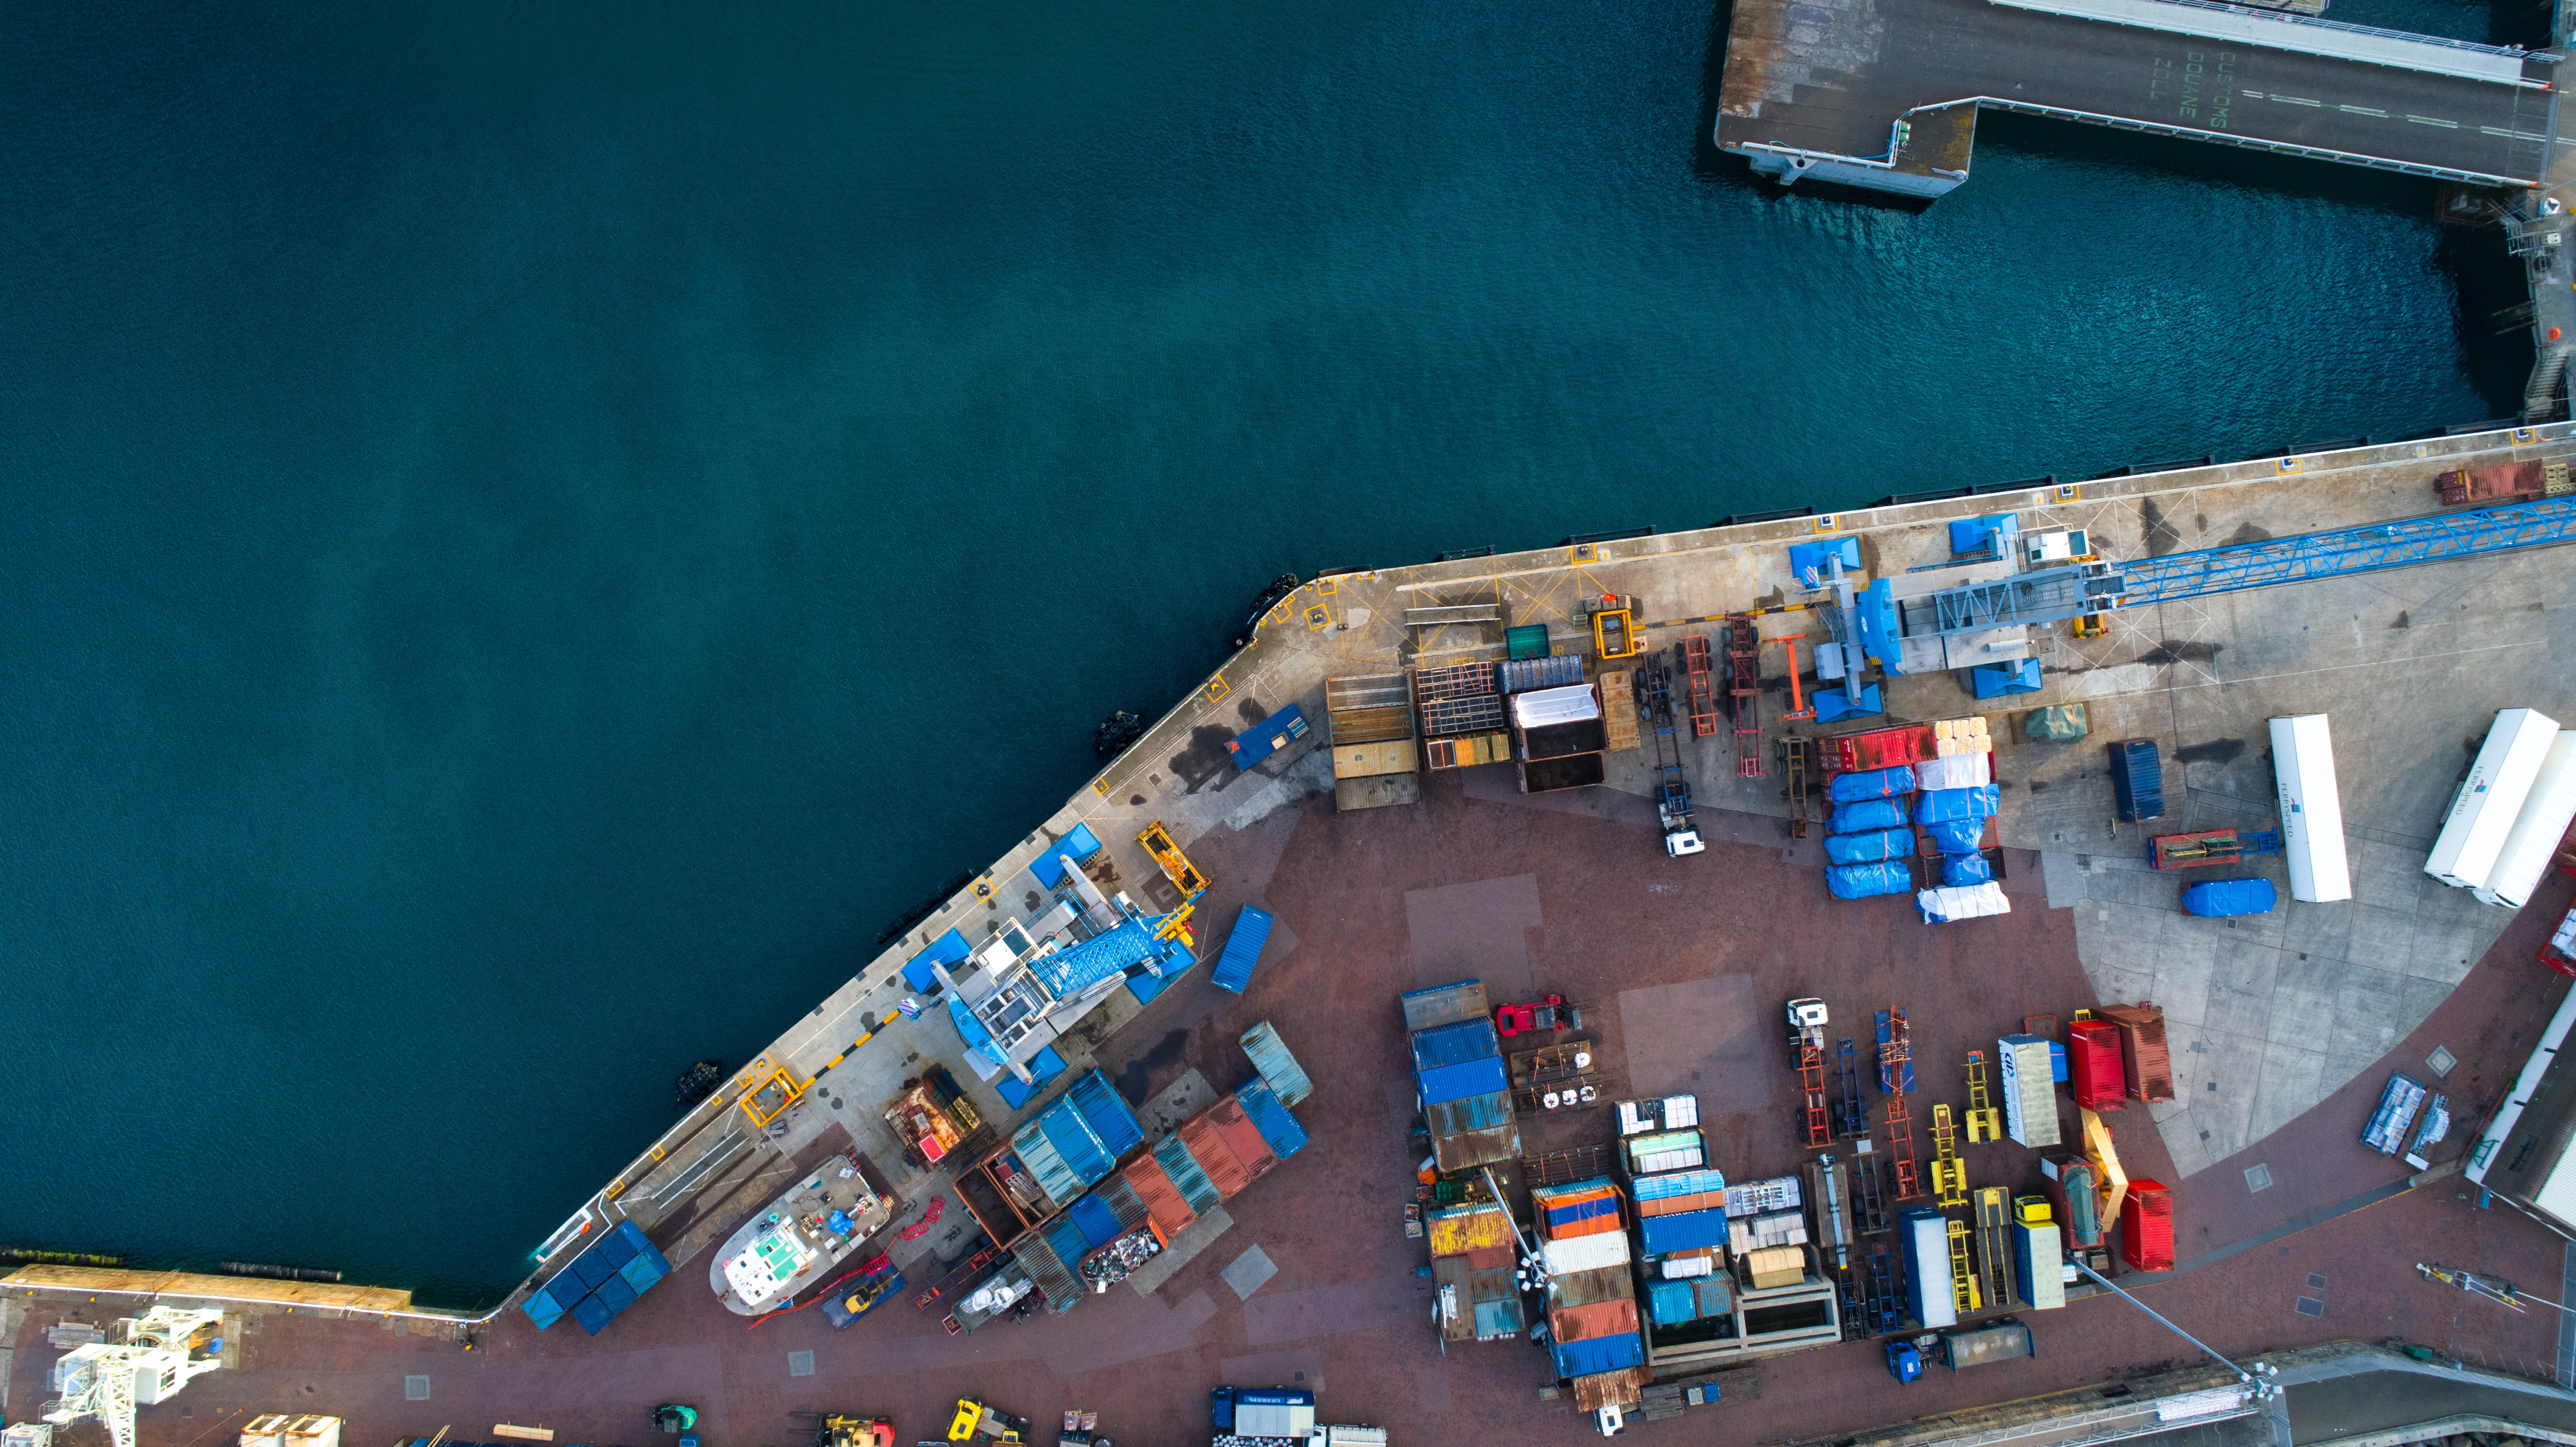 An overhead shot of Saint Peter Port with shipping containers next to the calm sea.